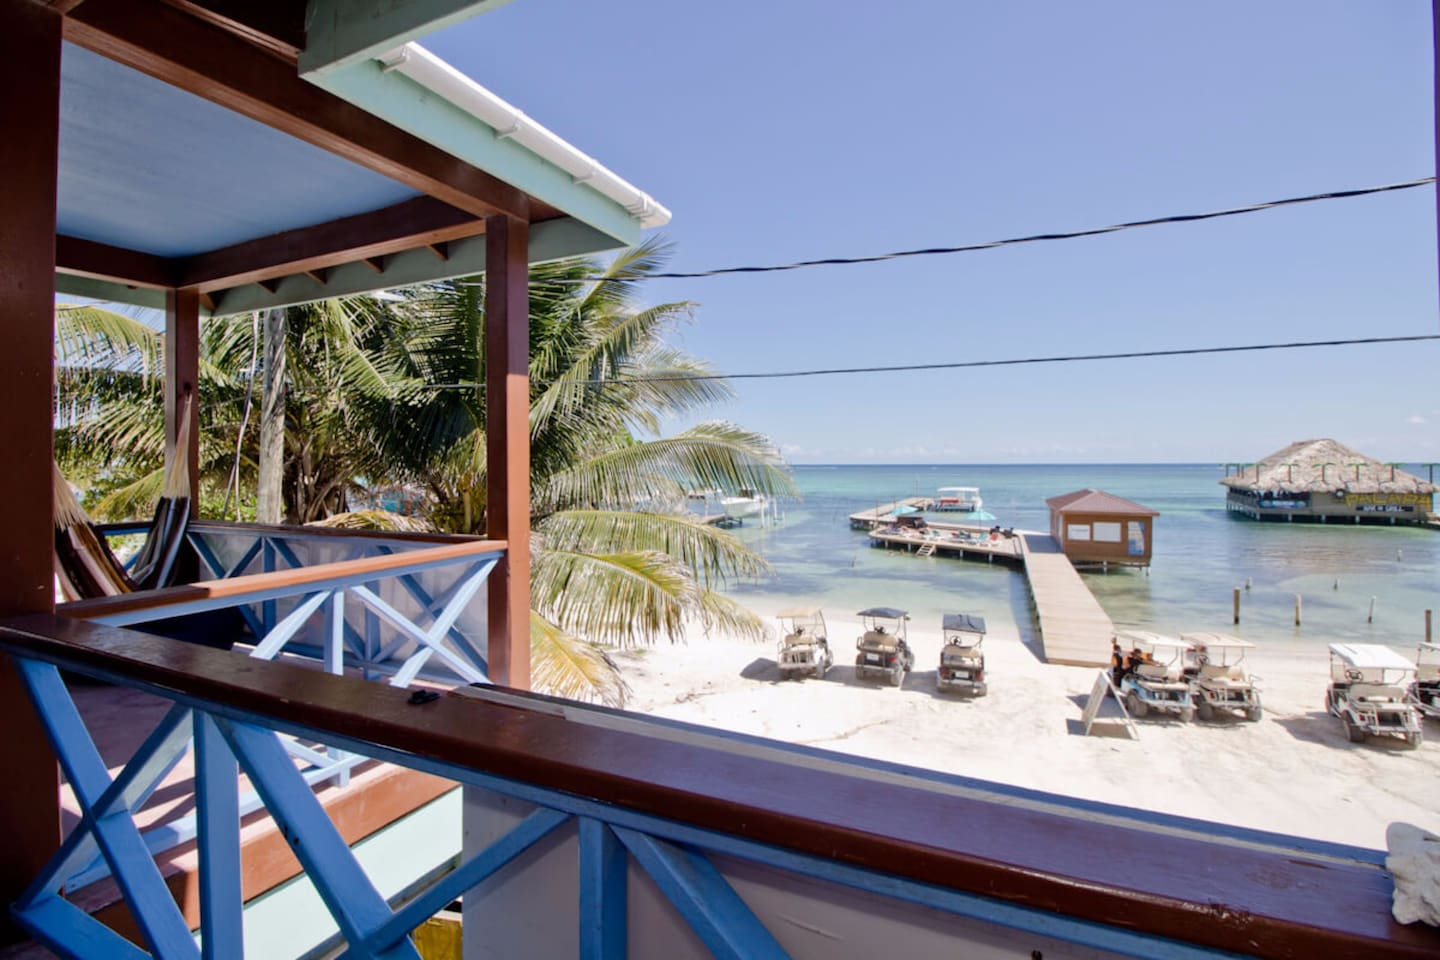 View of our over the water deck from your balcony!